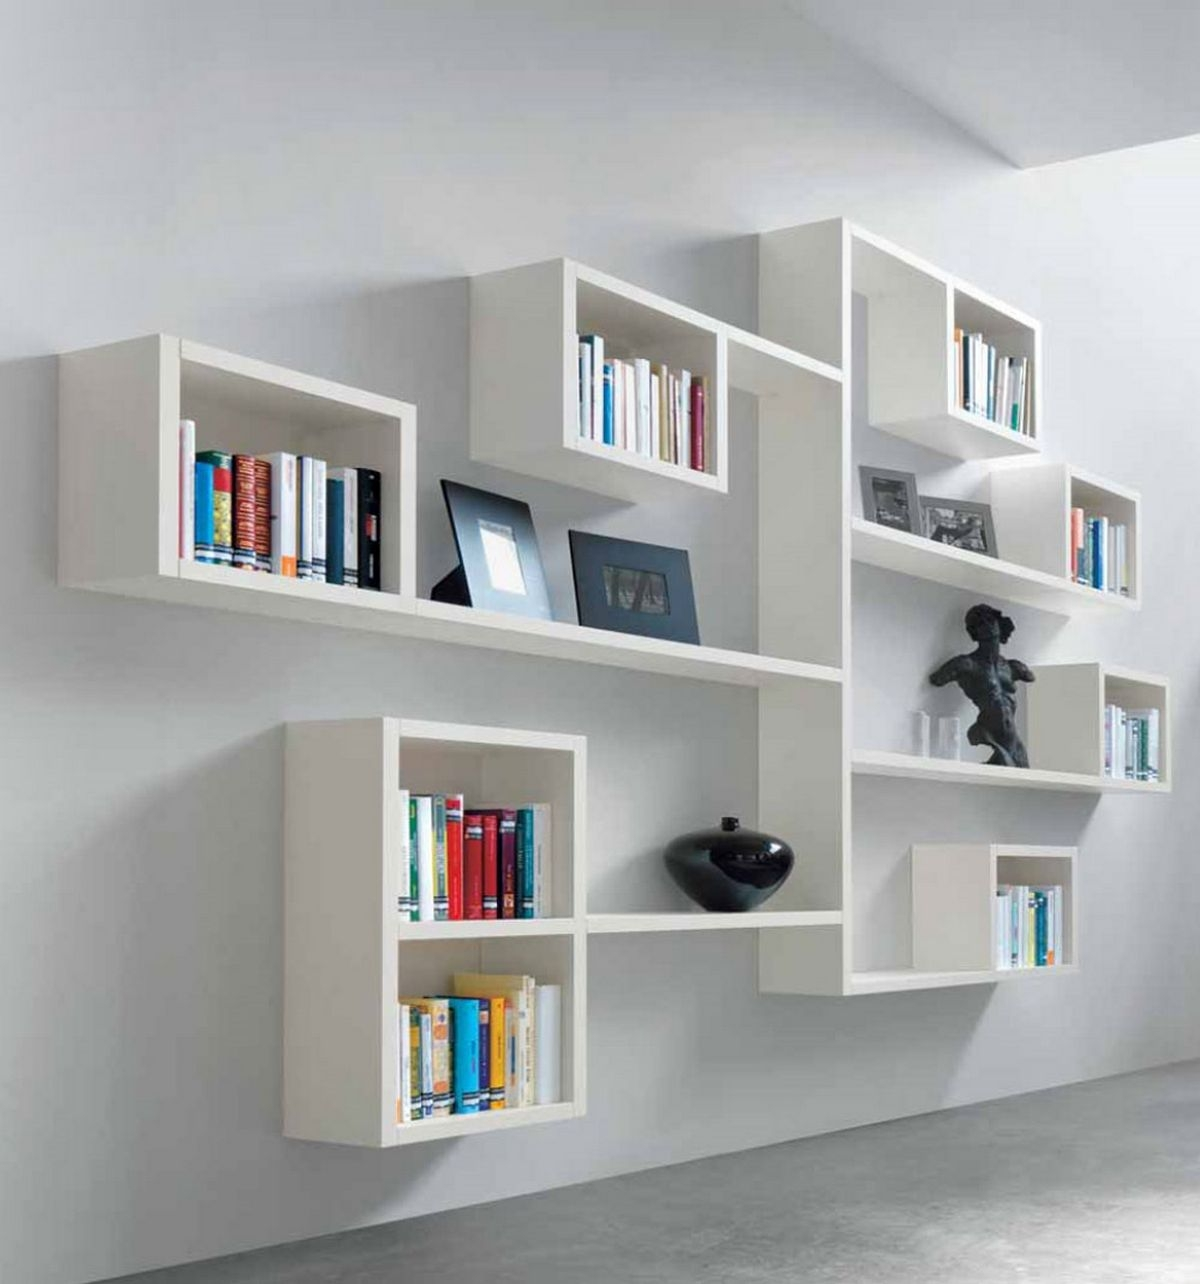 26 Of The Most Creative Bookshelves Designs Minimalist Book Regarding Bookshelves Designs For Home (View 14 of 15)